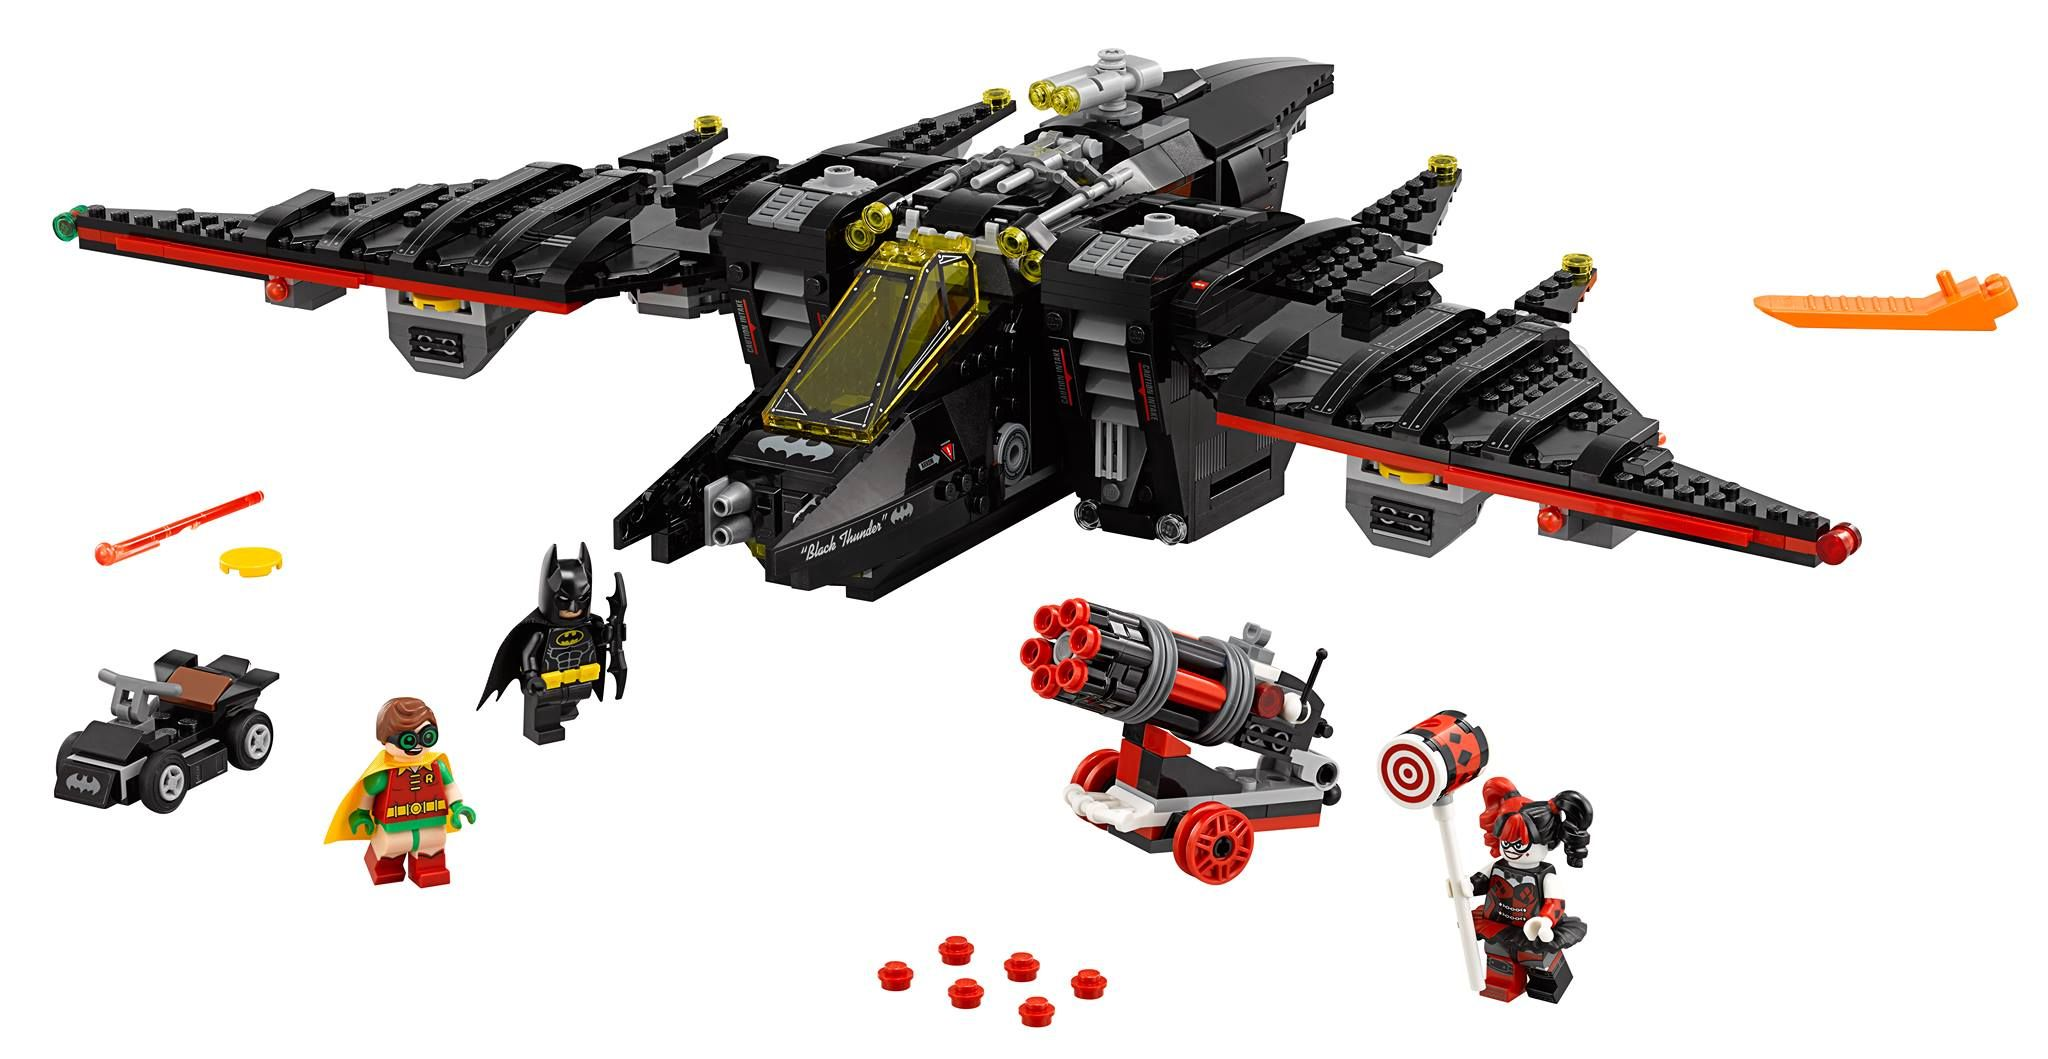 LEGO The LEGO Batman Movie 70916 Batwing